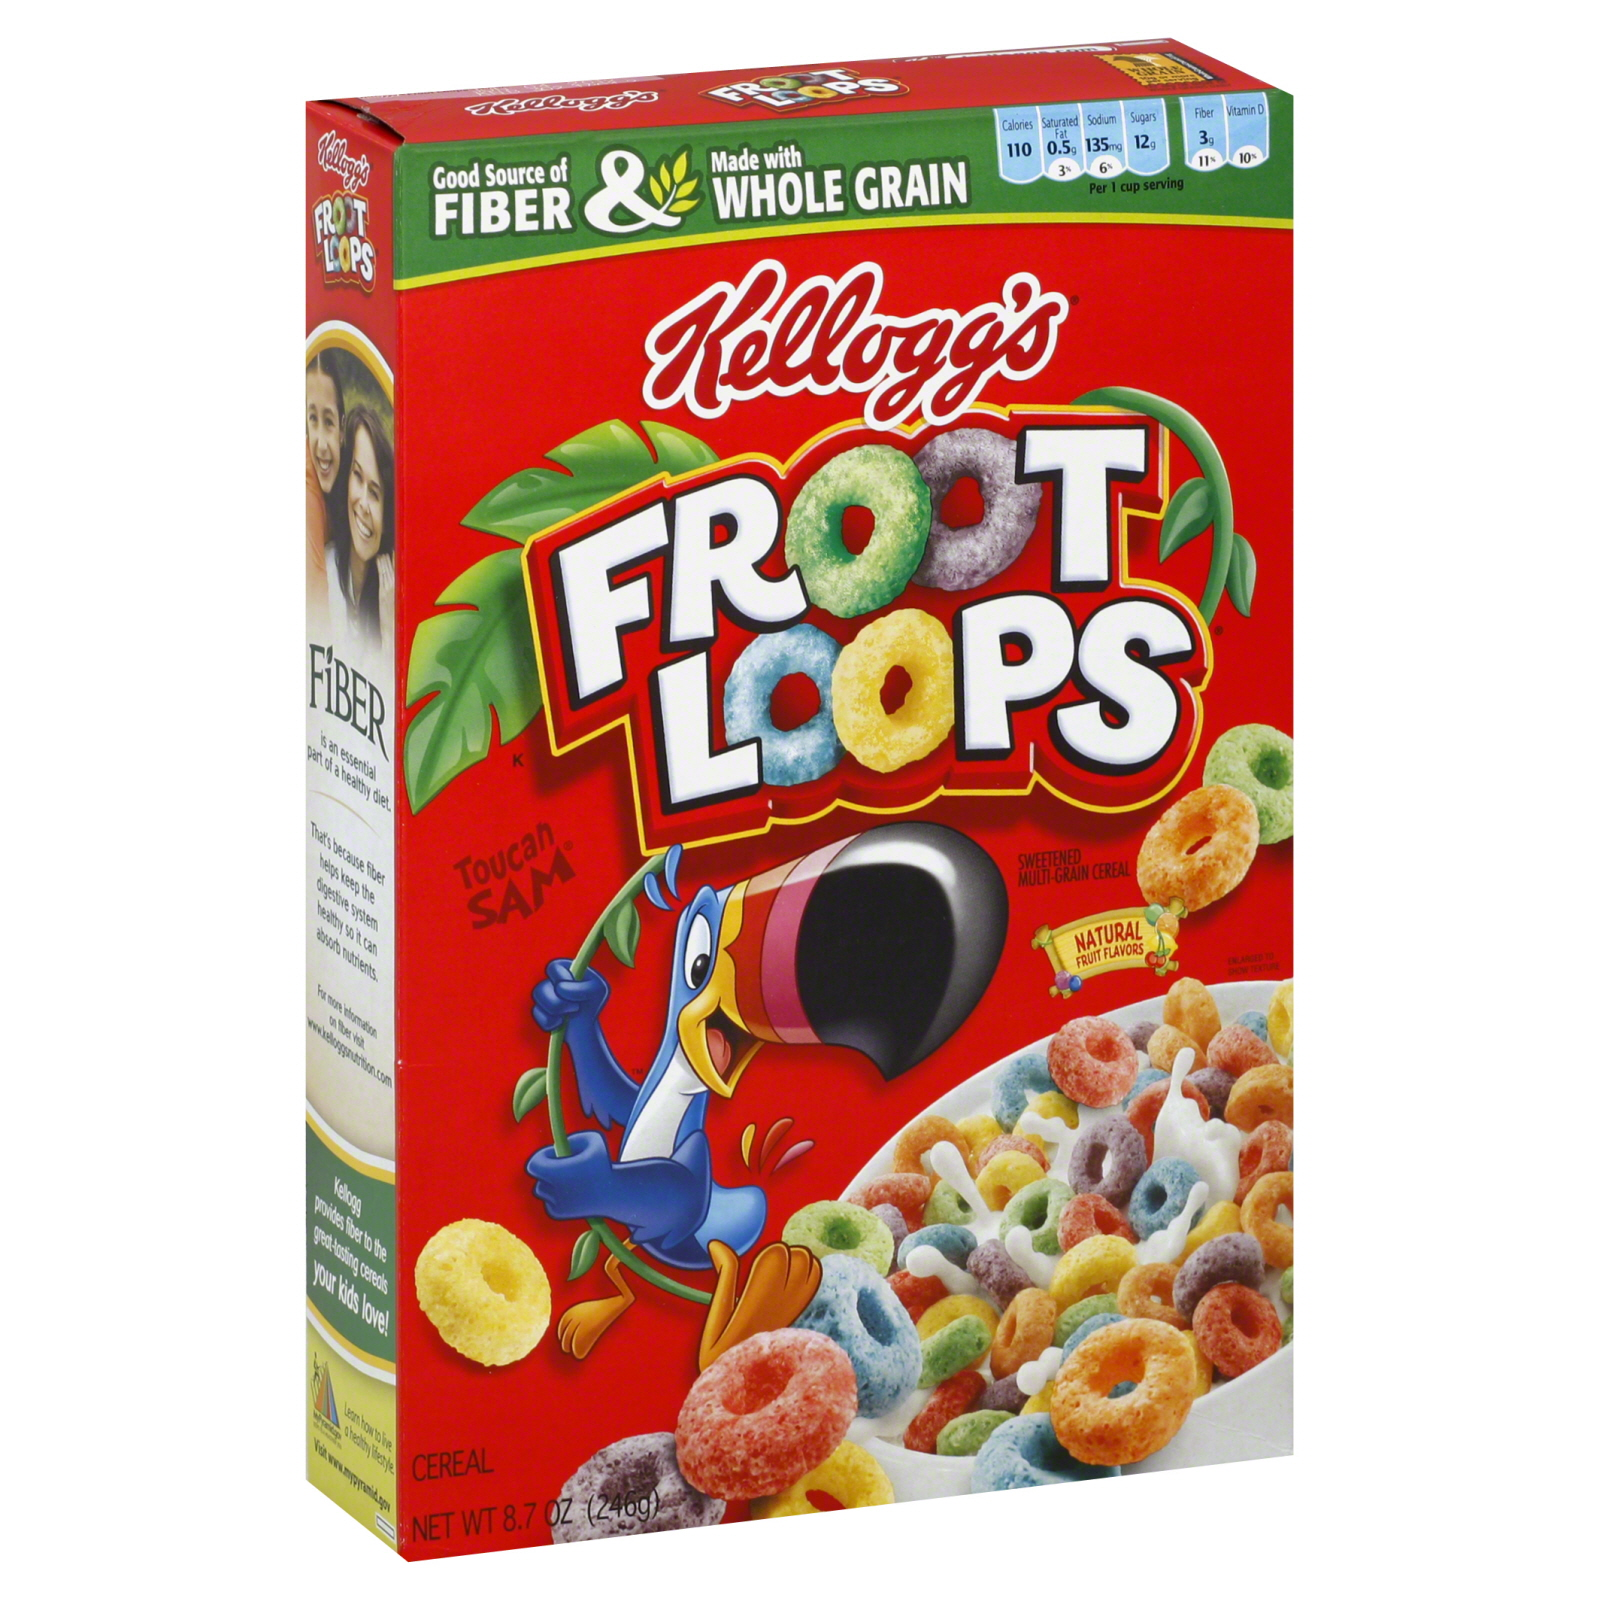 Cereal, 8.7 oz (246 g)                                                                                                           at mygofer.com